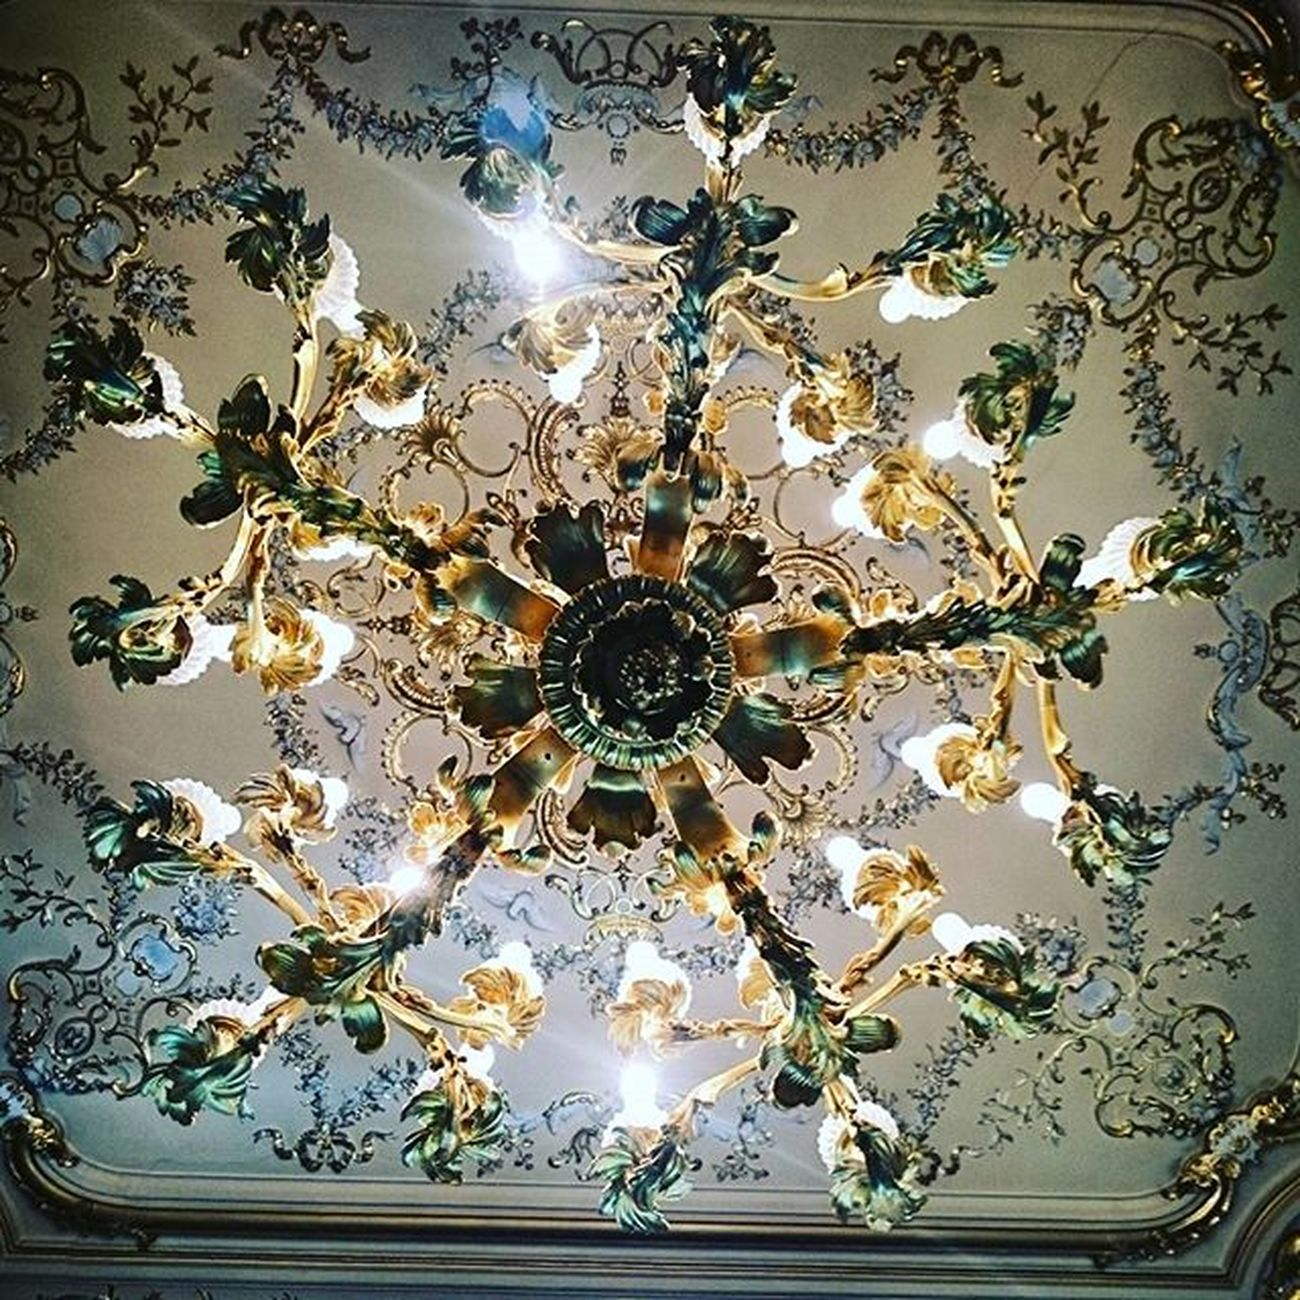 Saintpetersburg Sanpietroburgo Saintpétersbourg Perfect Symmetry Geometry Archilovers Architecture Justgoshoot Urbanexplorer Picoftheday Amazing Art Decor Light Green Ic_architecture Chandelier